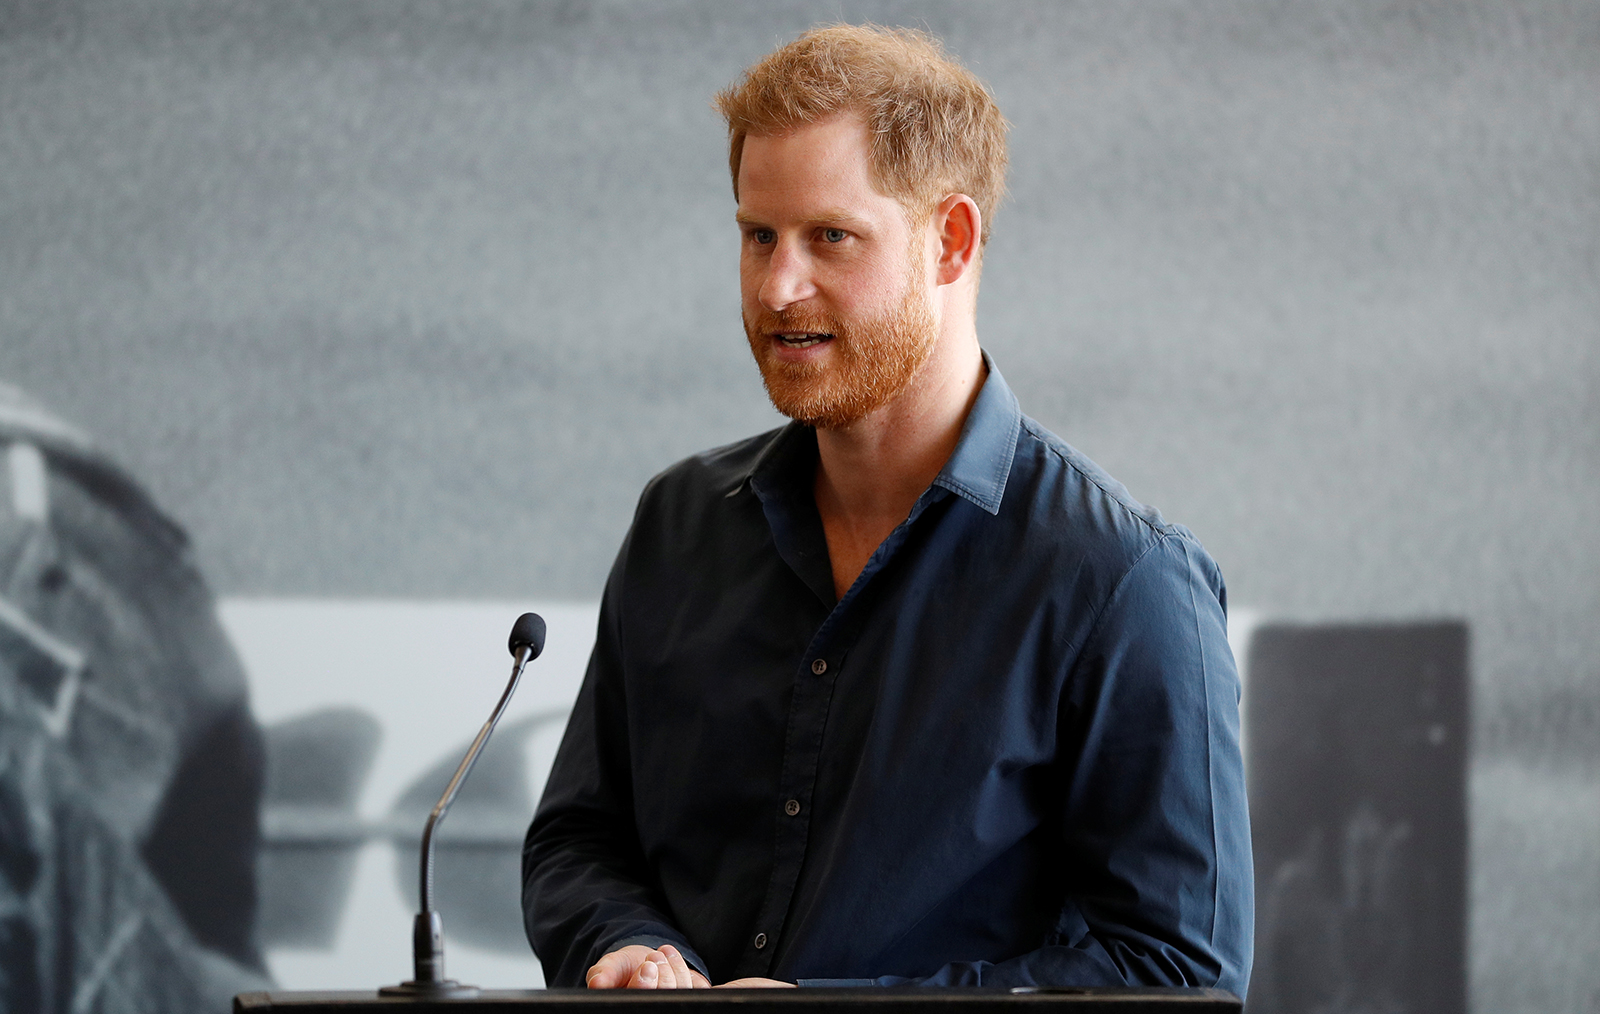 Prince Harry, Duke of Sussex speaks during a visit to The Silverstone Experience at Silverstone on March 6, 2020 in Northampton, England.